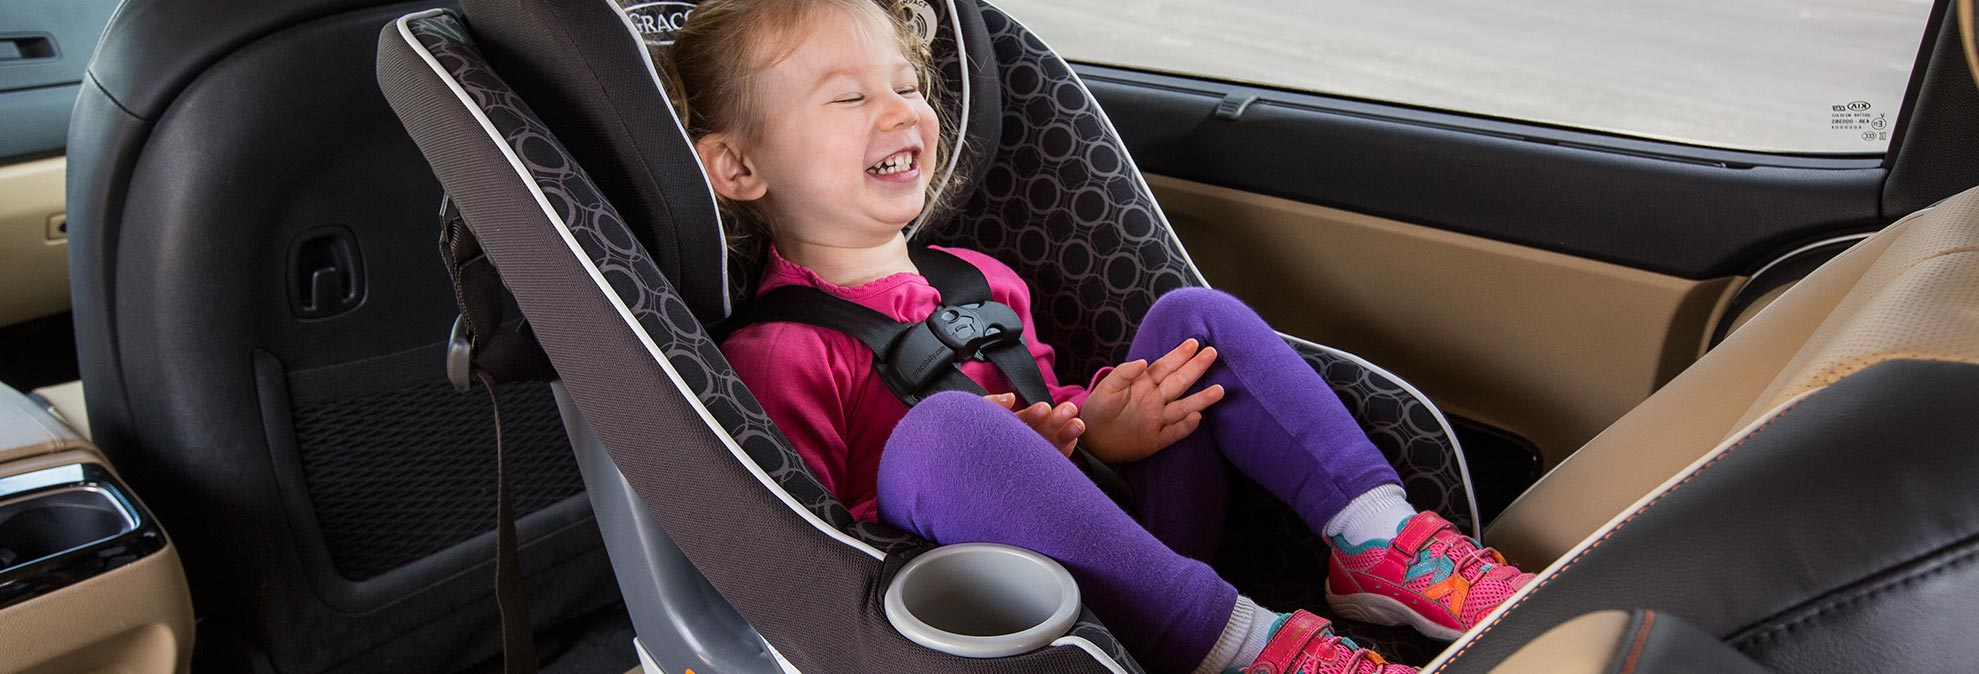 Why Kids Should Stay Longer in Rear-Facing Car Seats